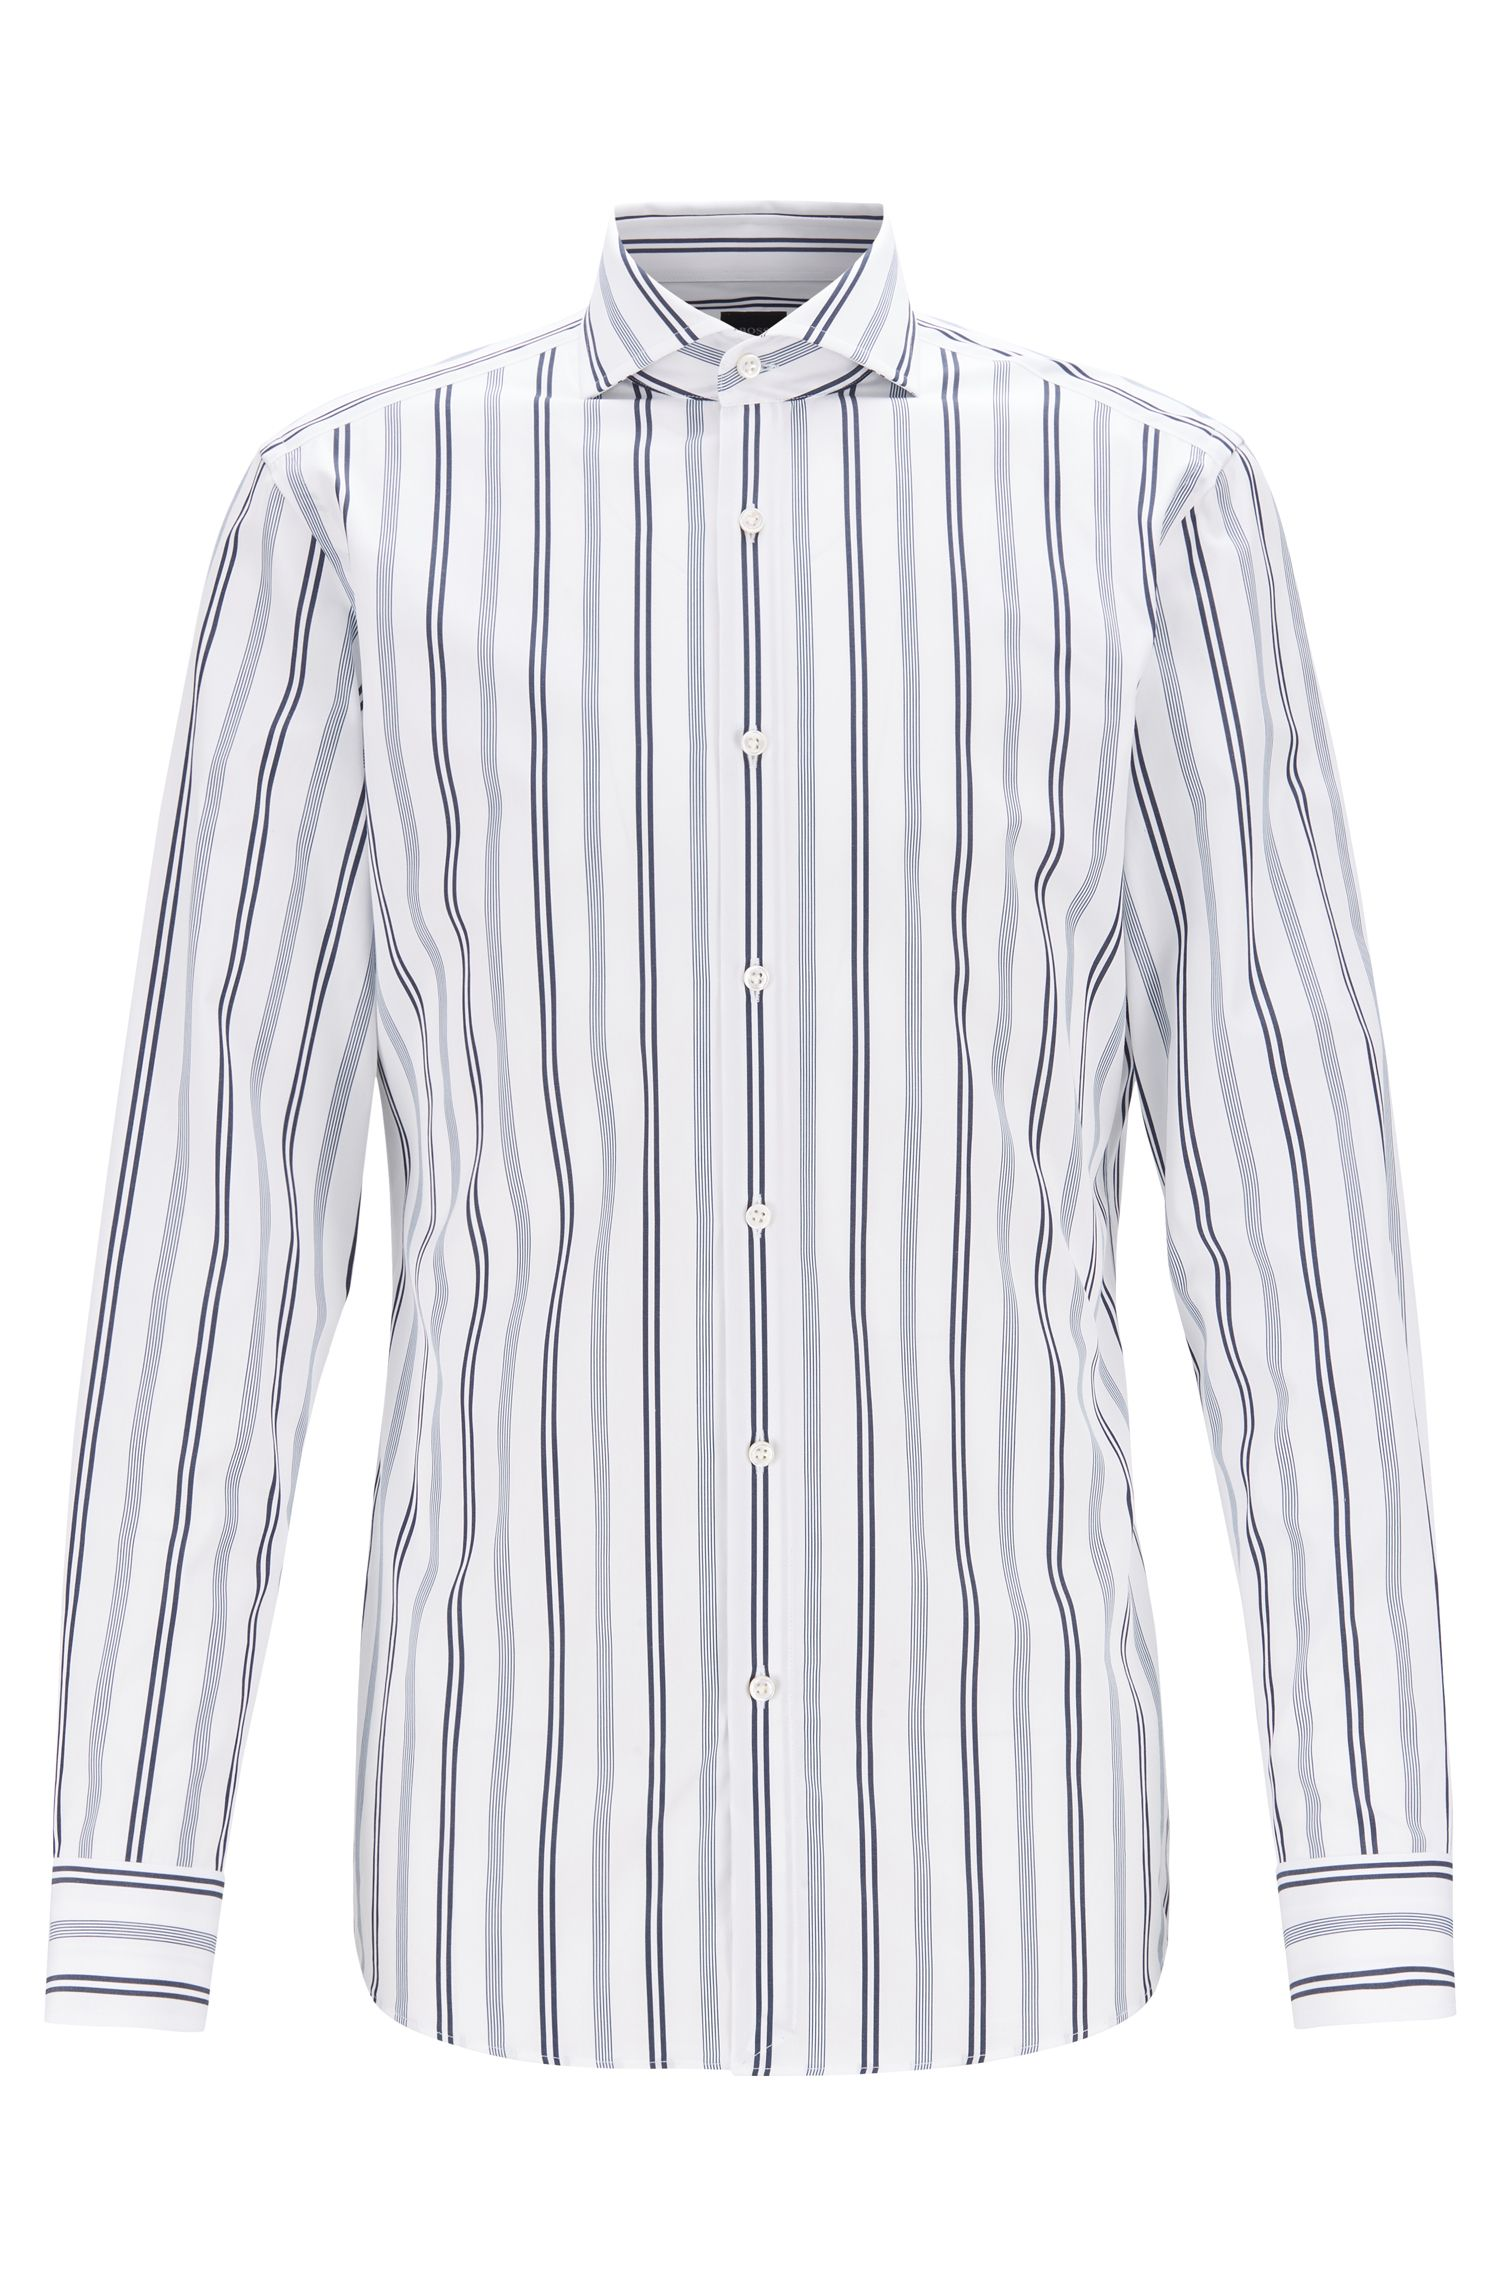 Slim-fit shirt in multi-striped cotton, Dark Blue